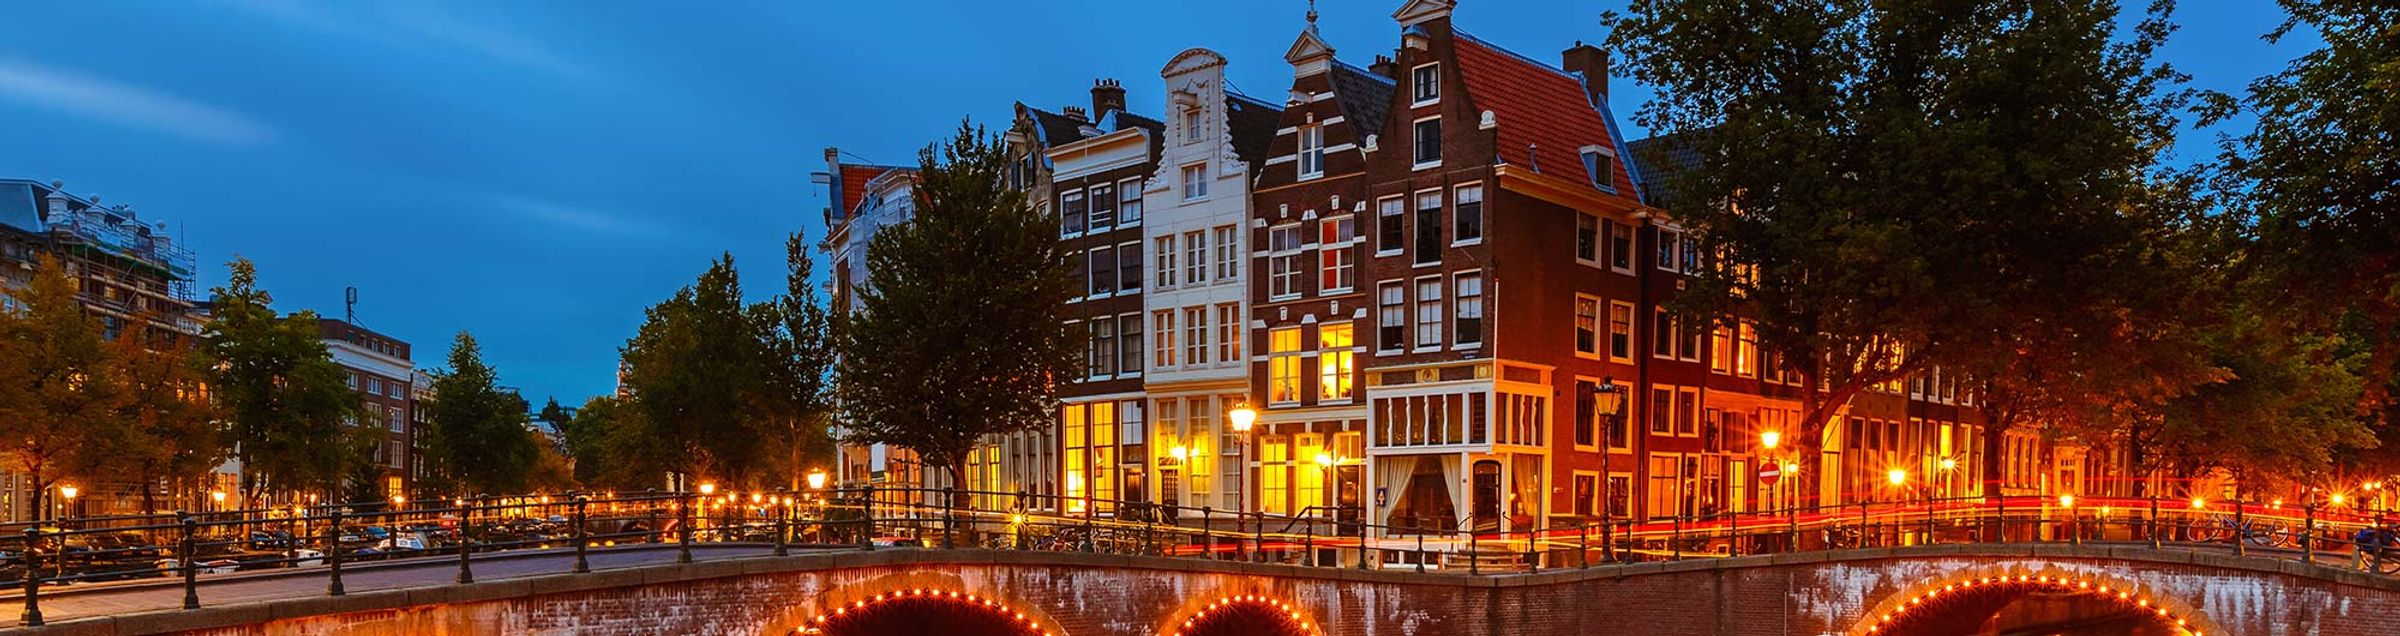 Amsterdam Hotels Find Amsterdam Hotel Deals With Skyscanner